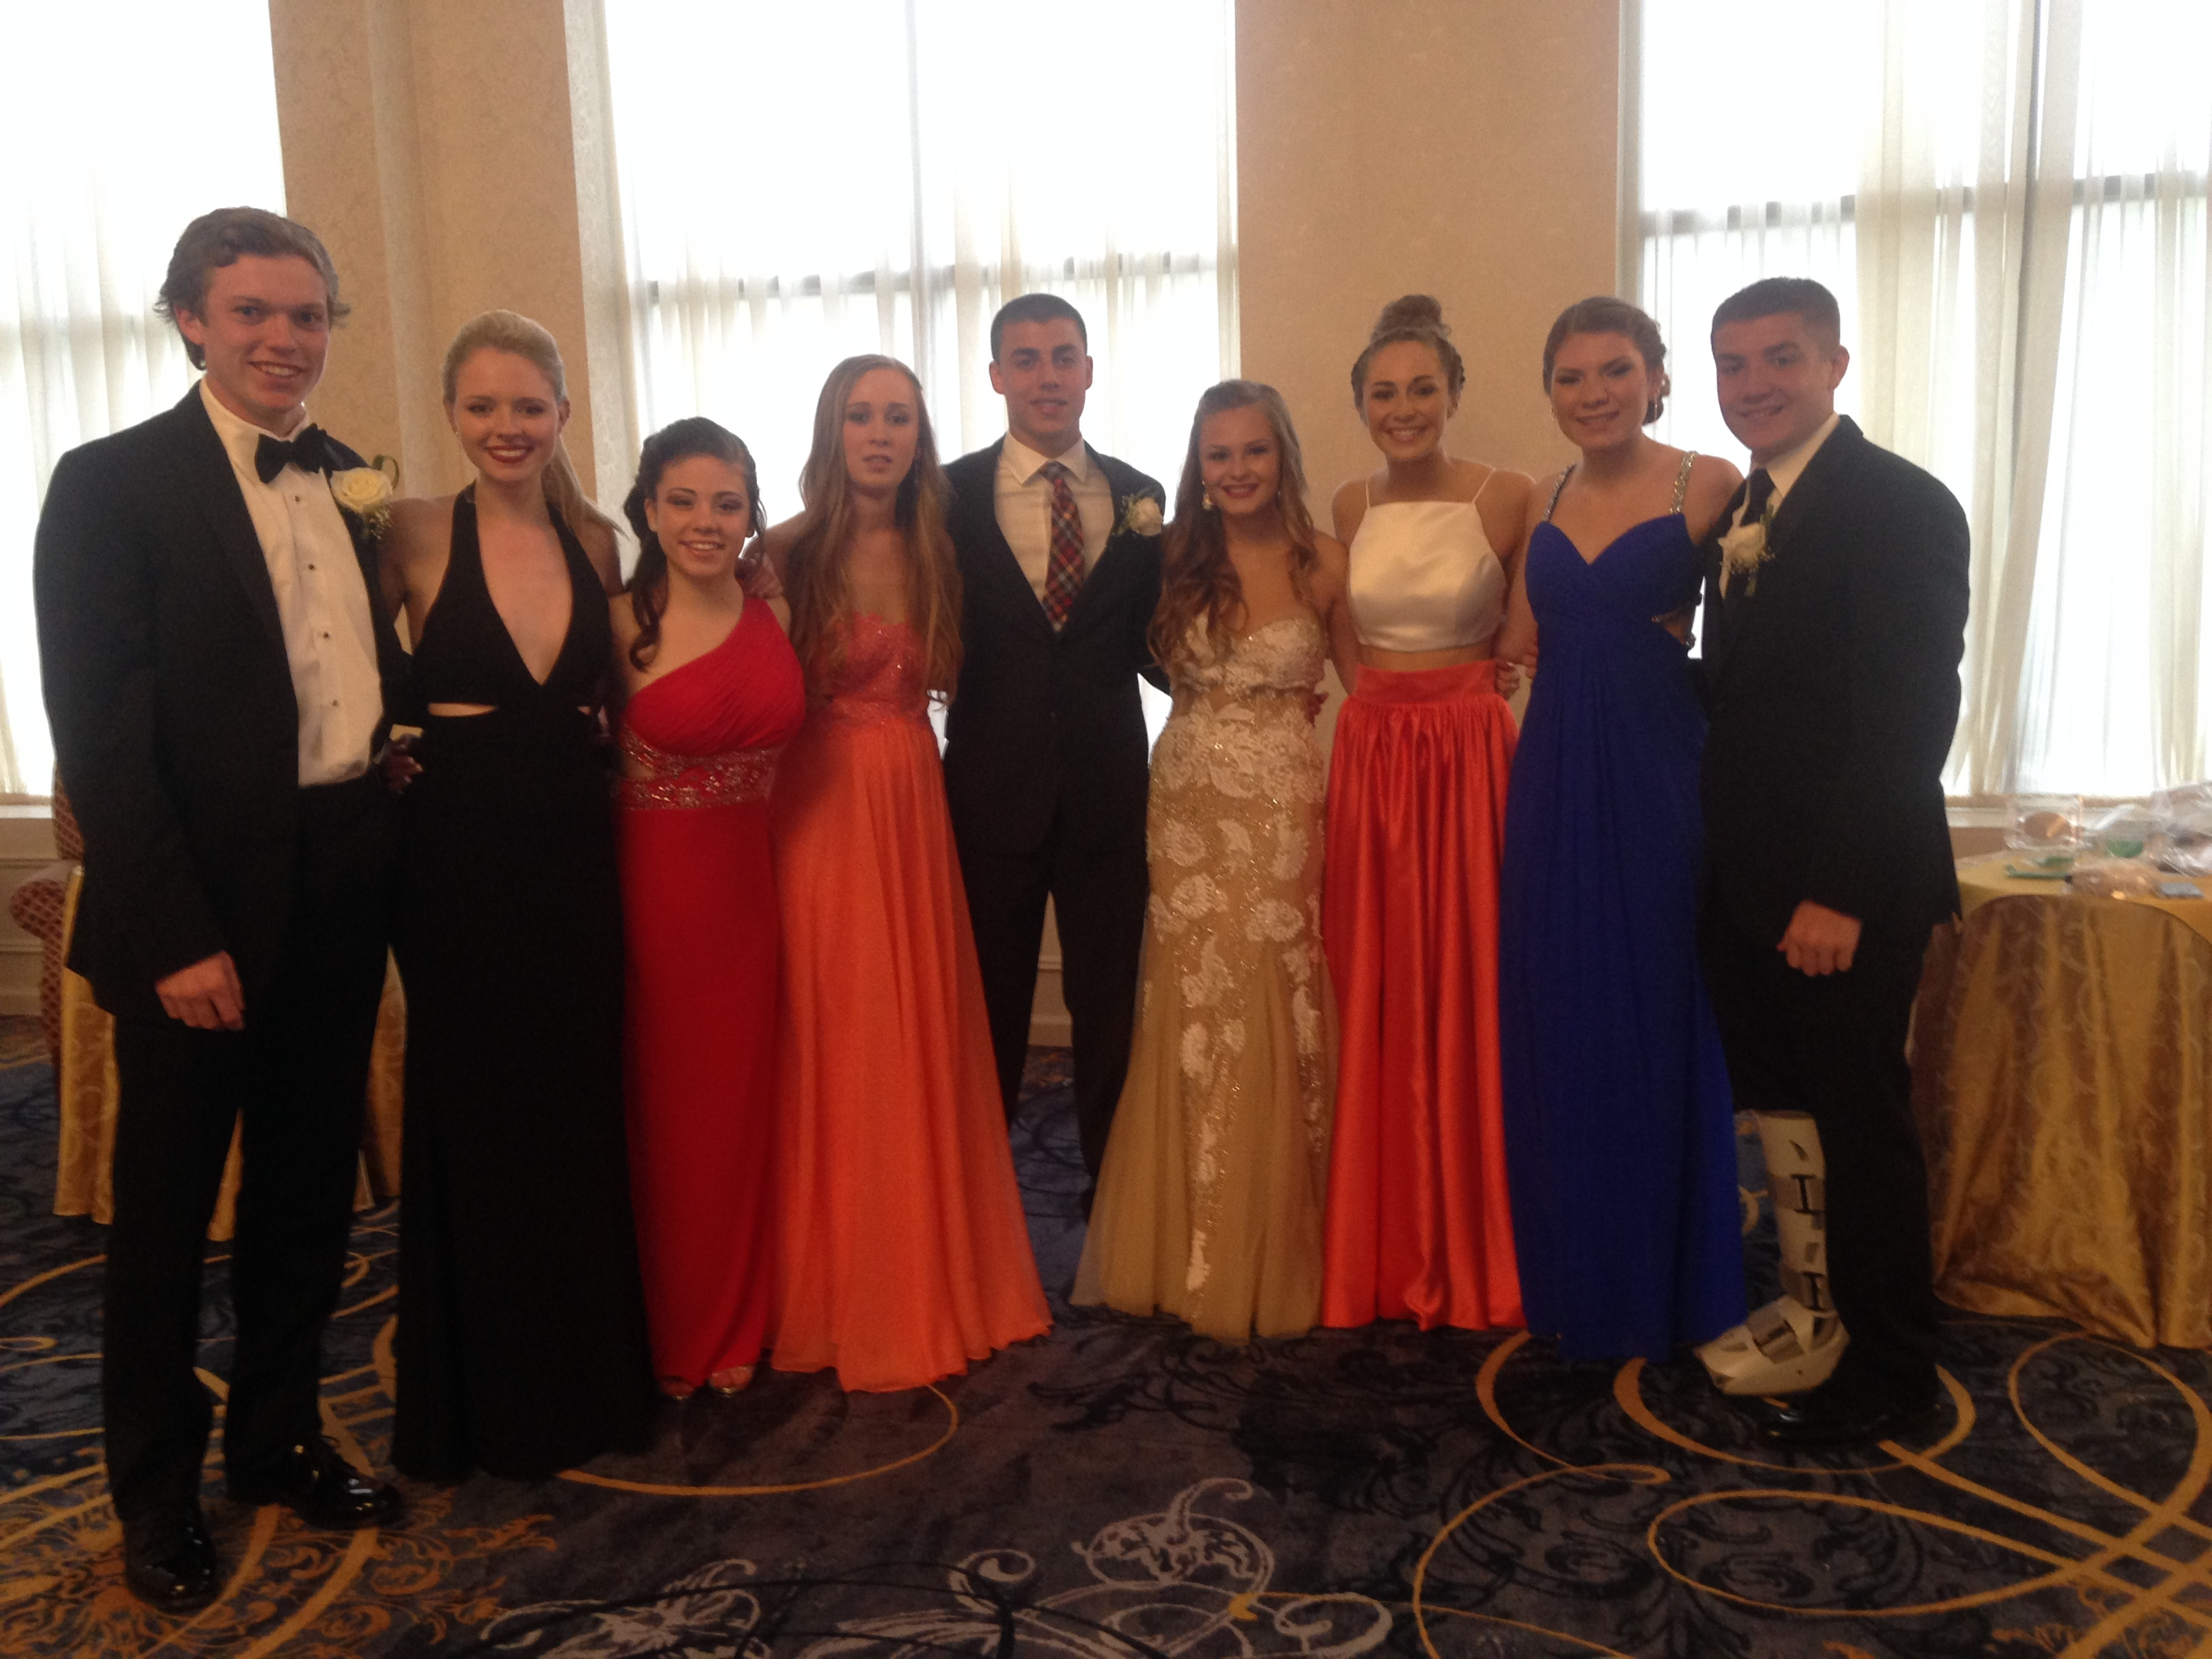 a night to remember morris knolls high school junior prom news a night to remember morris knolls high school junior prom news tapinto